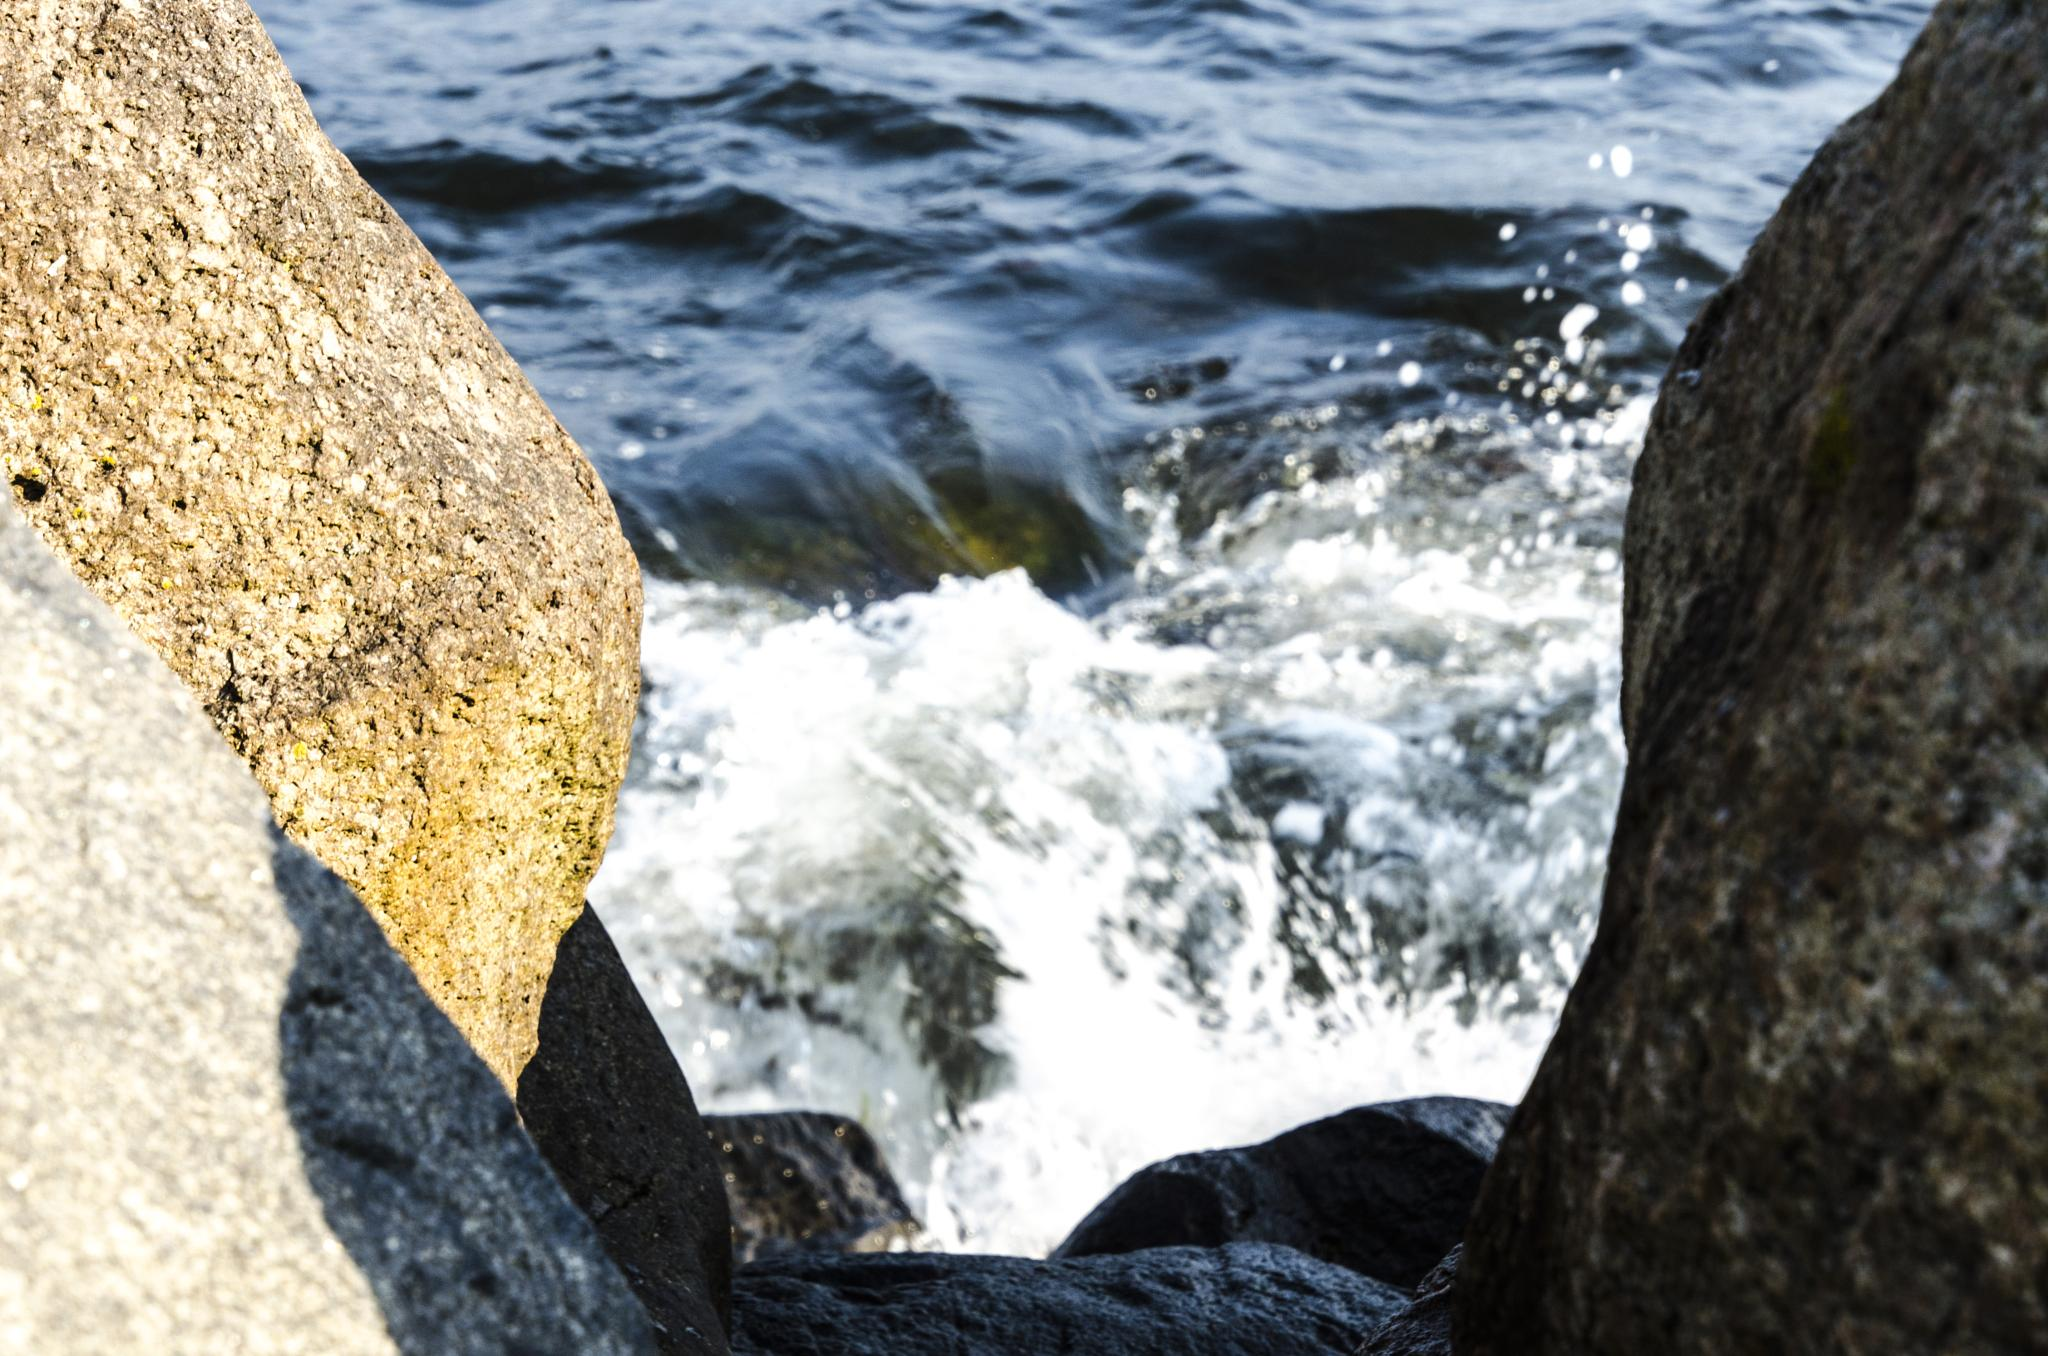 Water and stones by Johnny Lythell